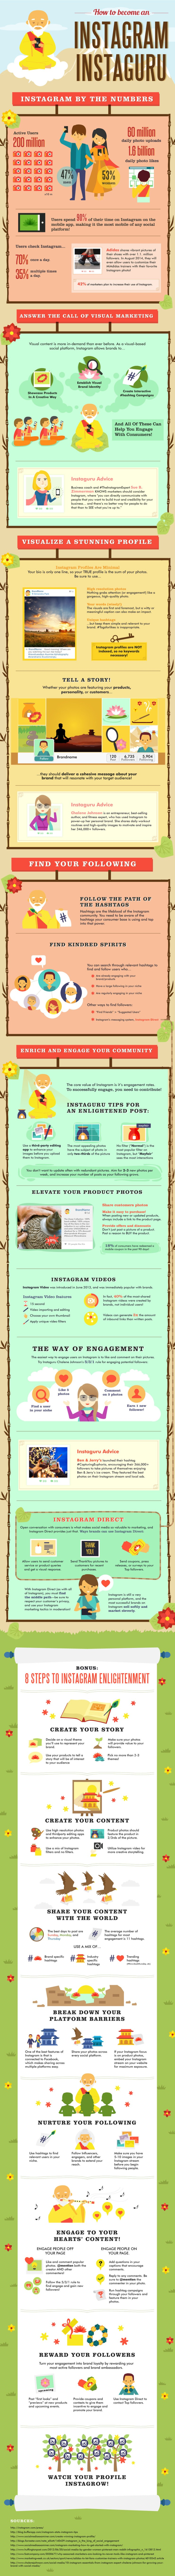 Instagram-Infographic